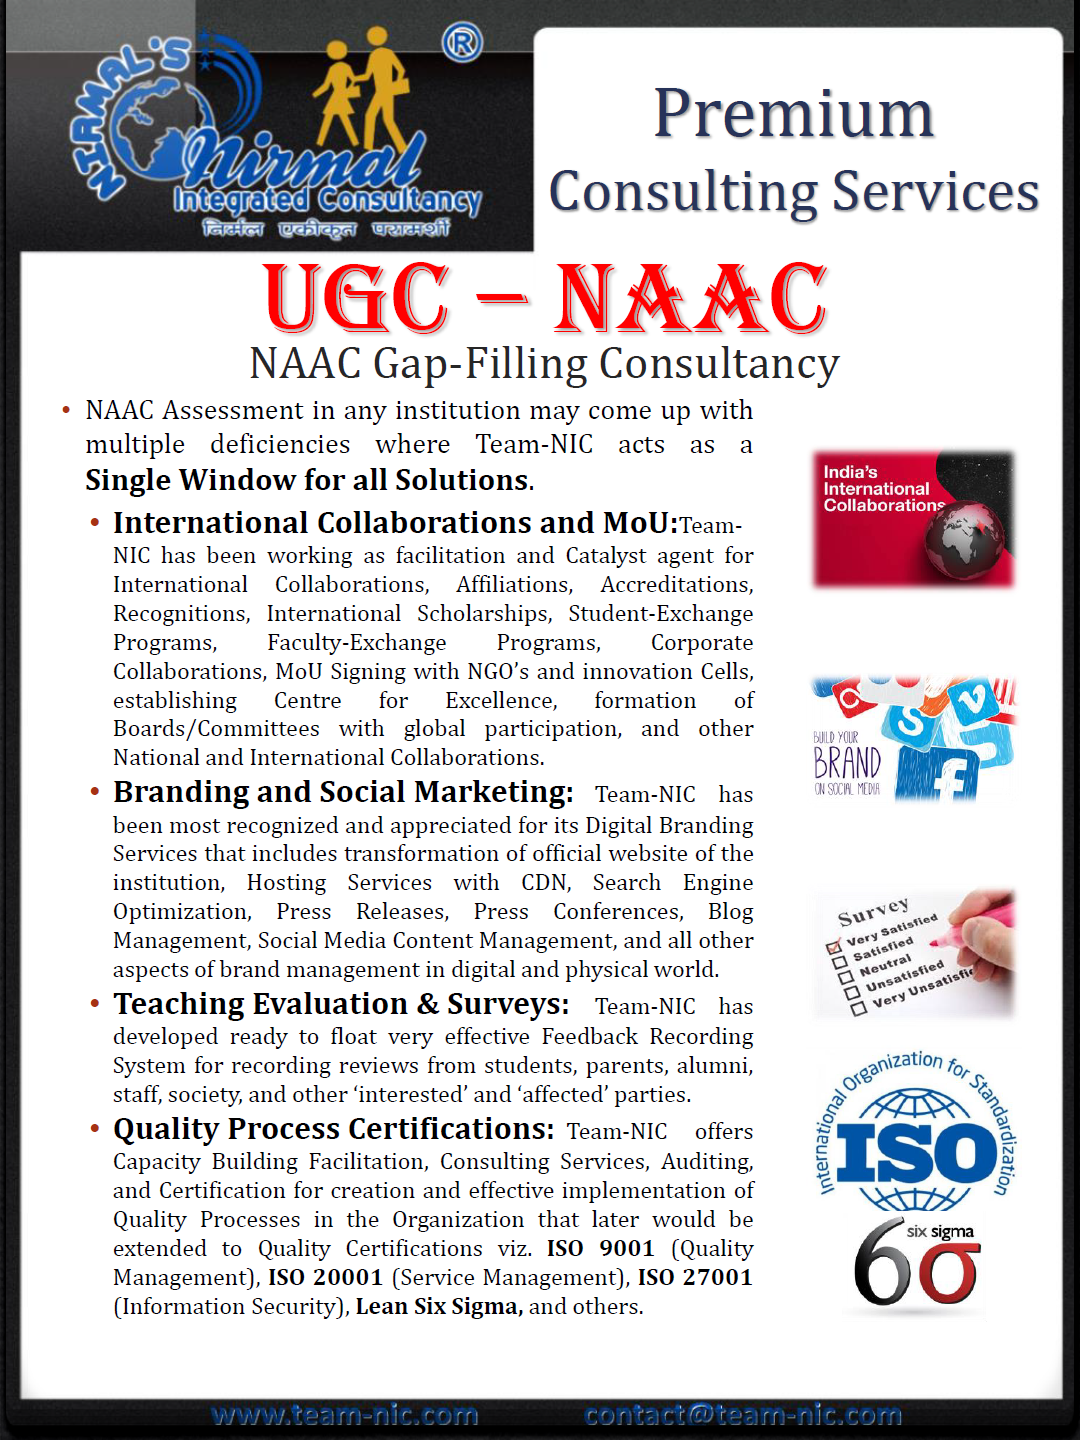 NAAC Consultancy Service - Gap Filling Support